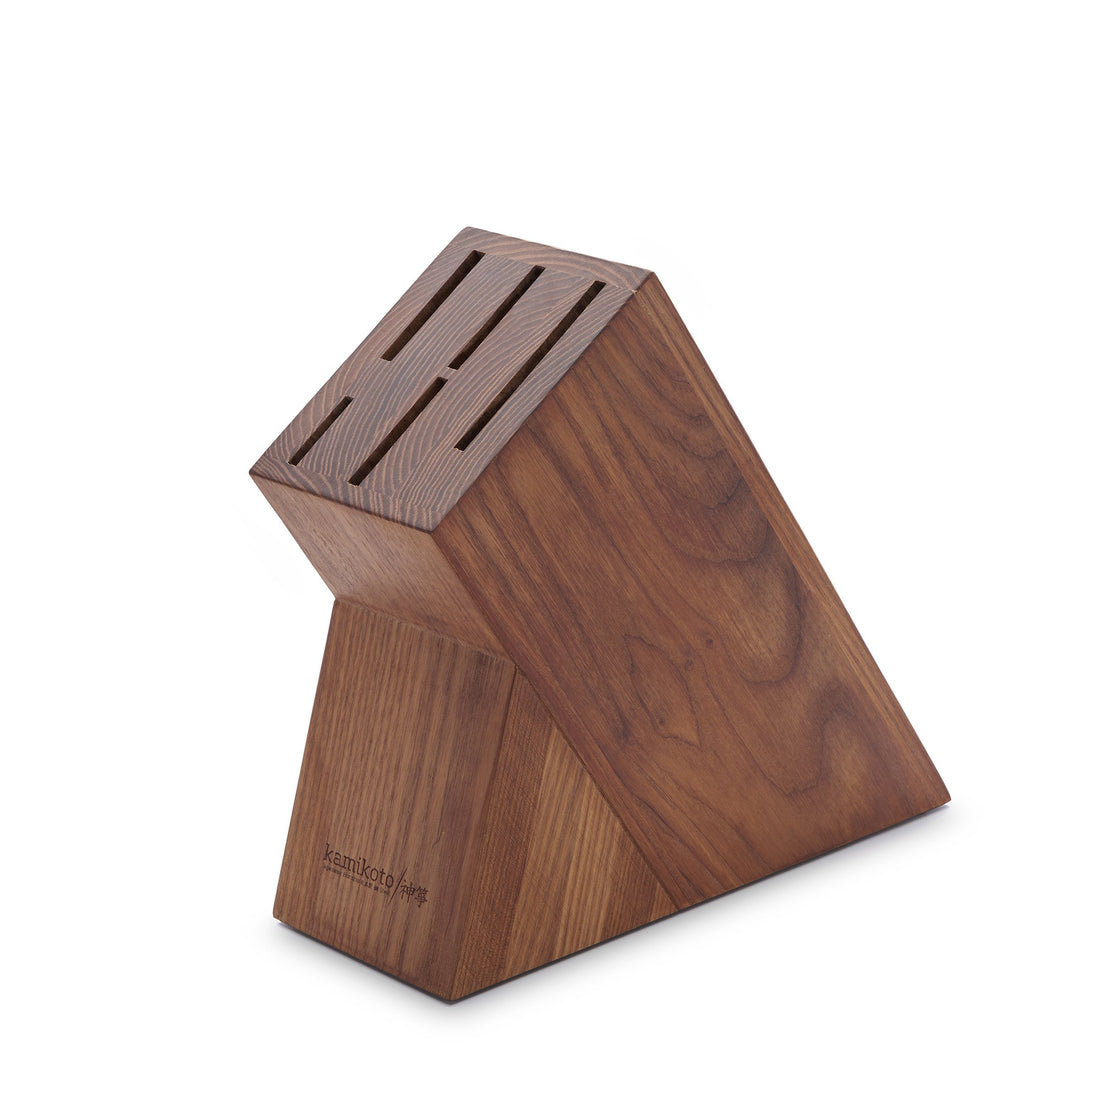 Kenrui Knife Block